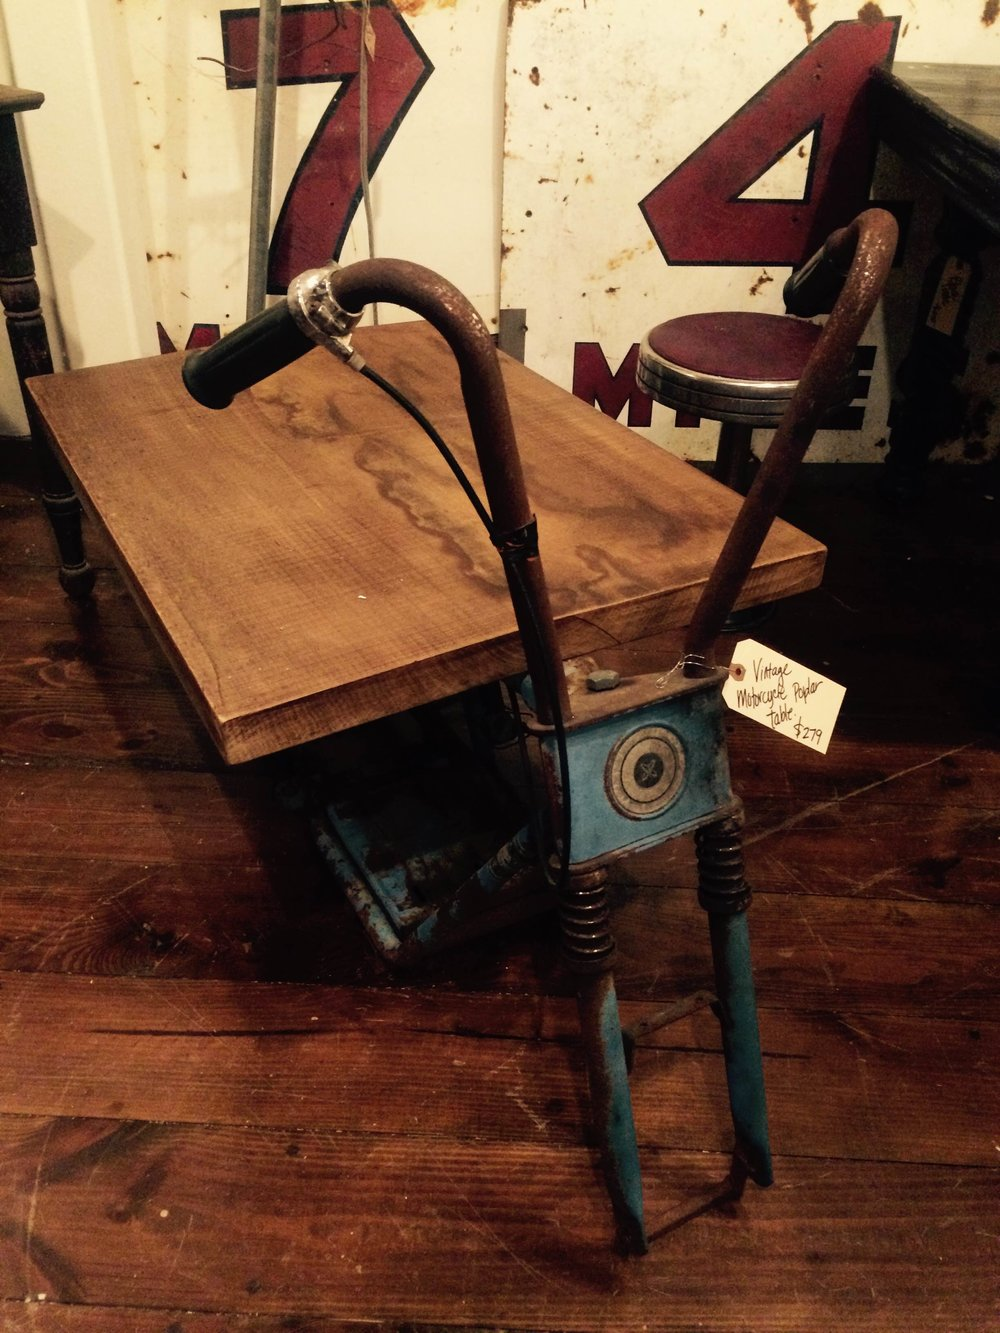 VINTAGE MOTOCYCLE UPCYCLED TABLE